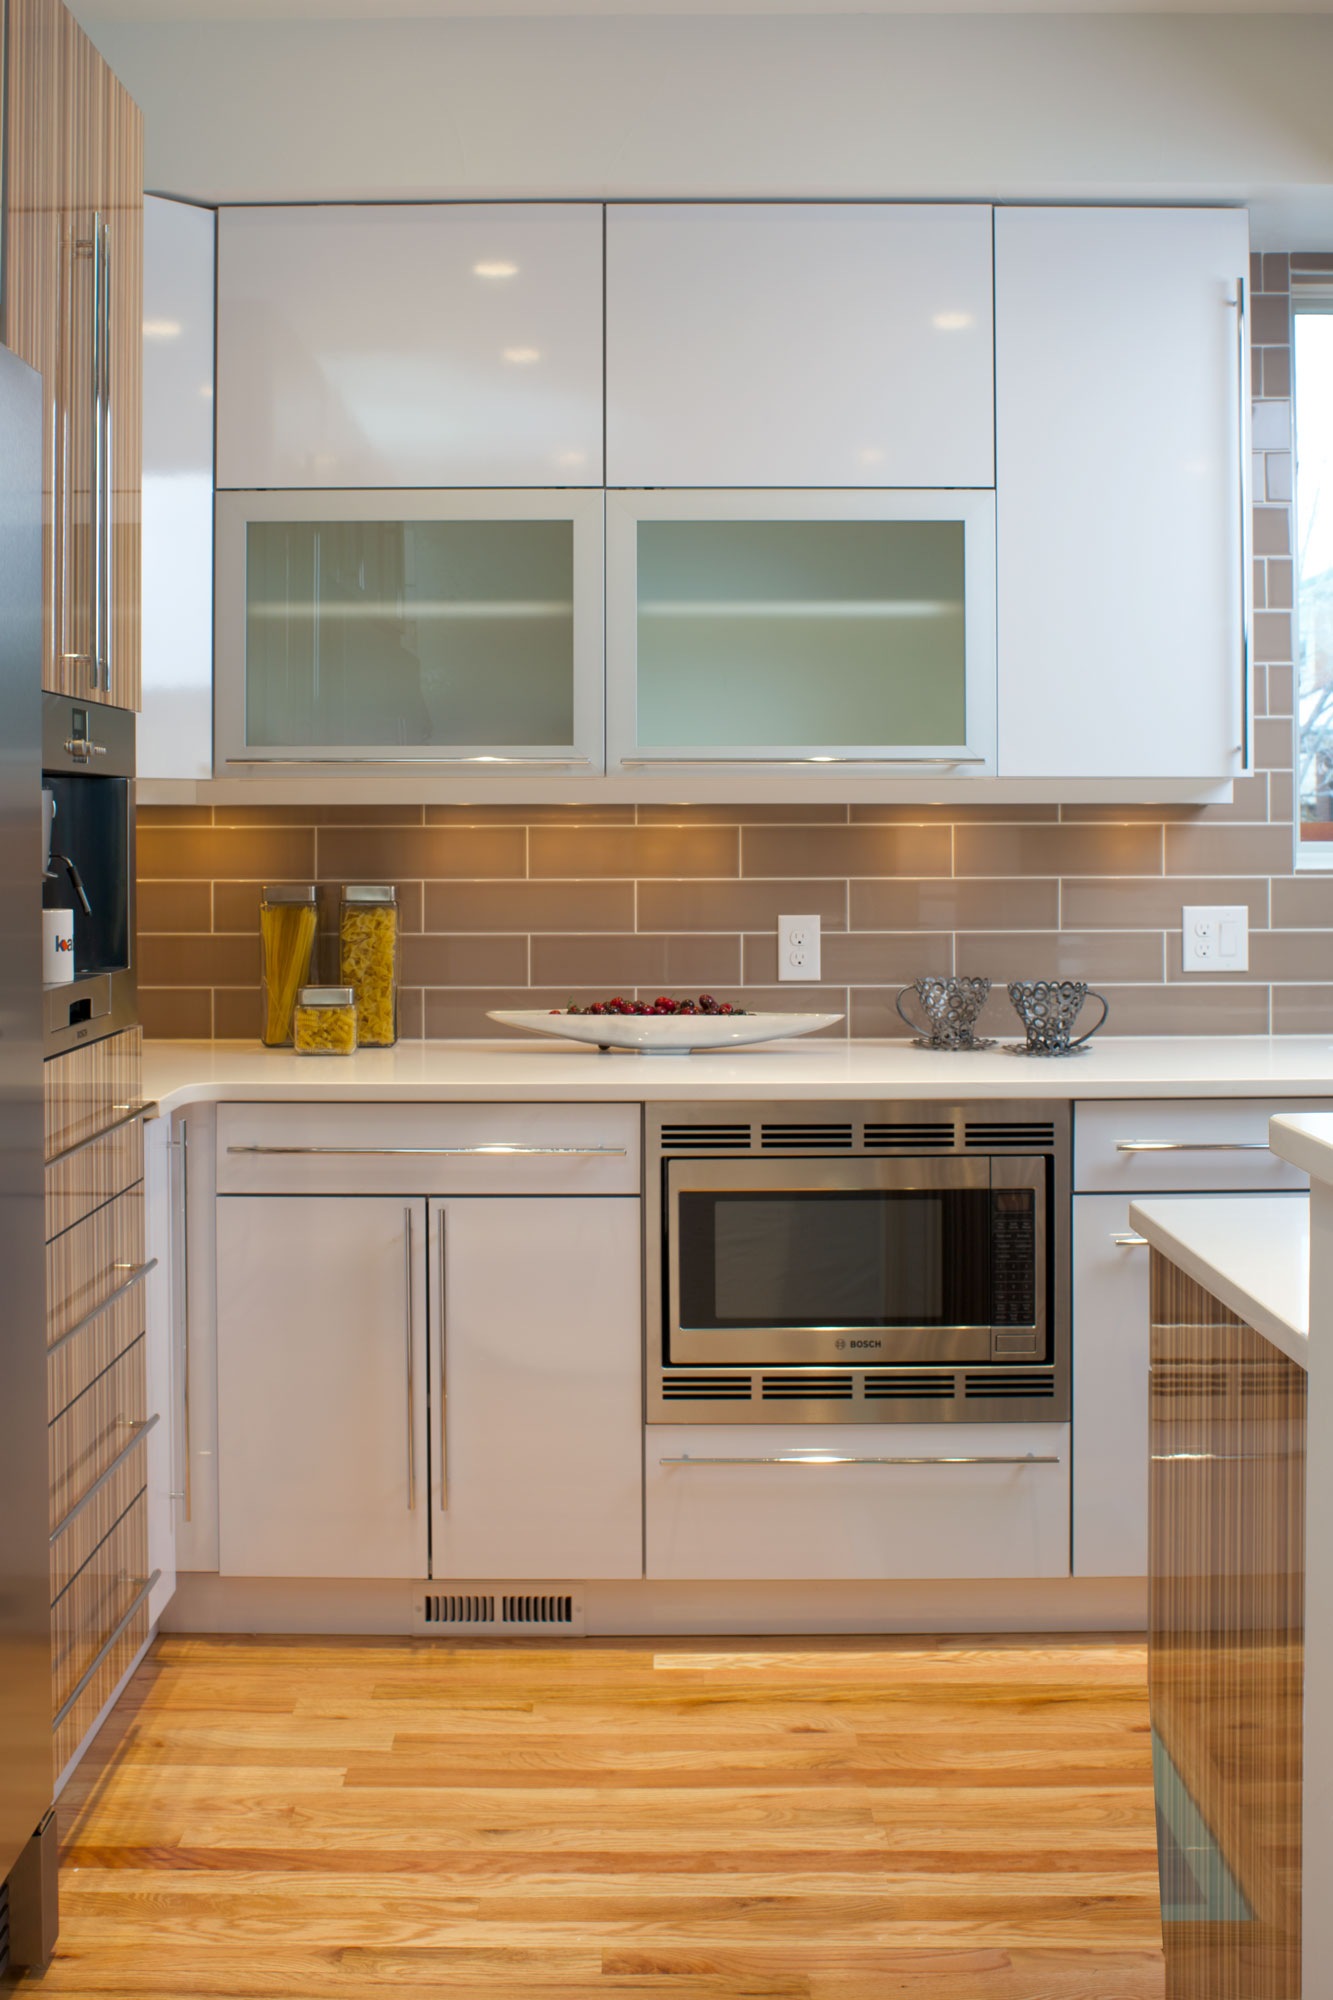 Garfield-87-&-81-Kitchens-1033-fixed.jpg